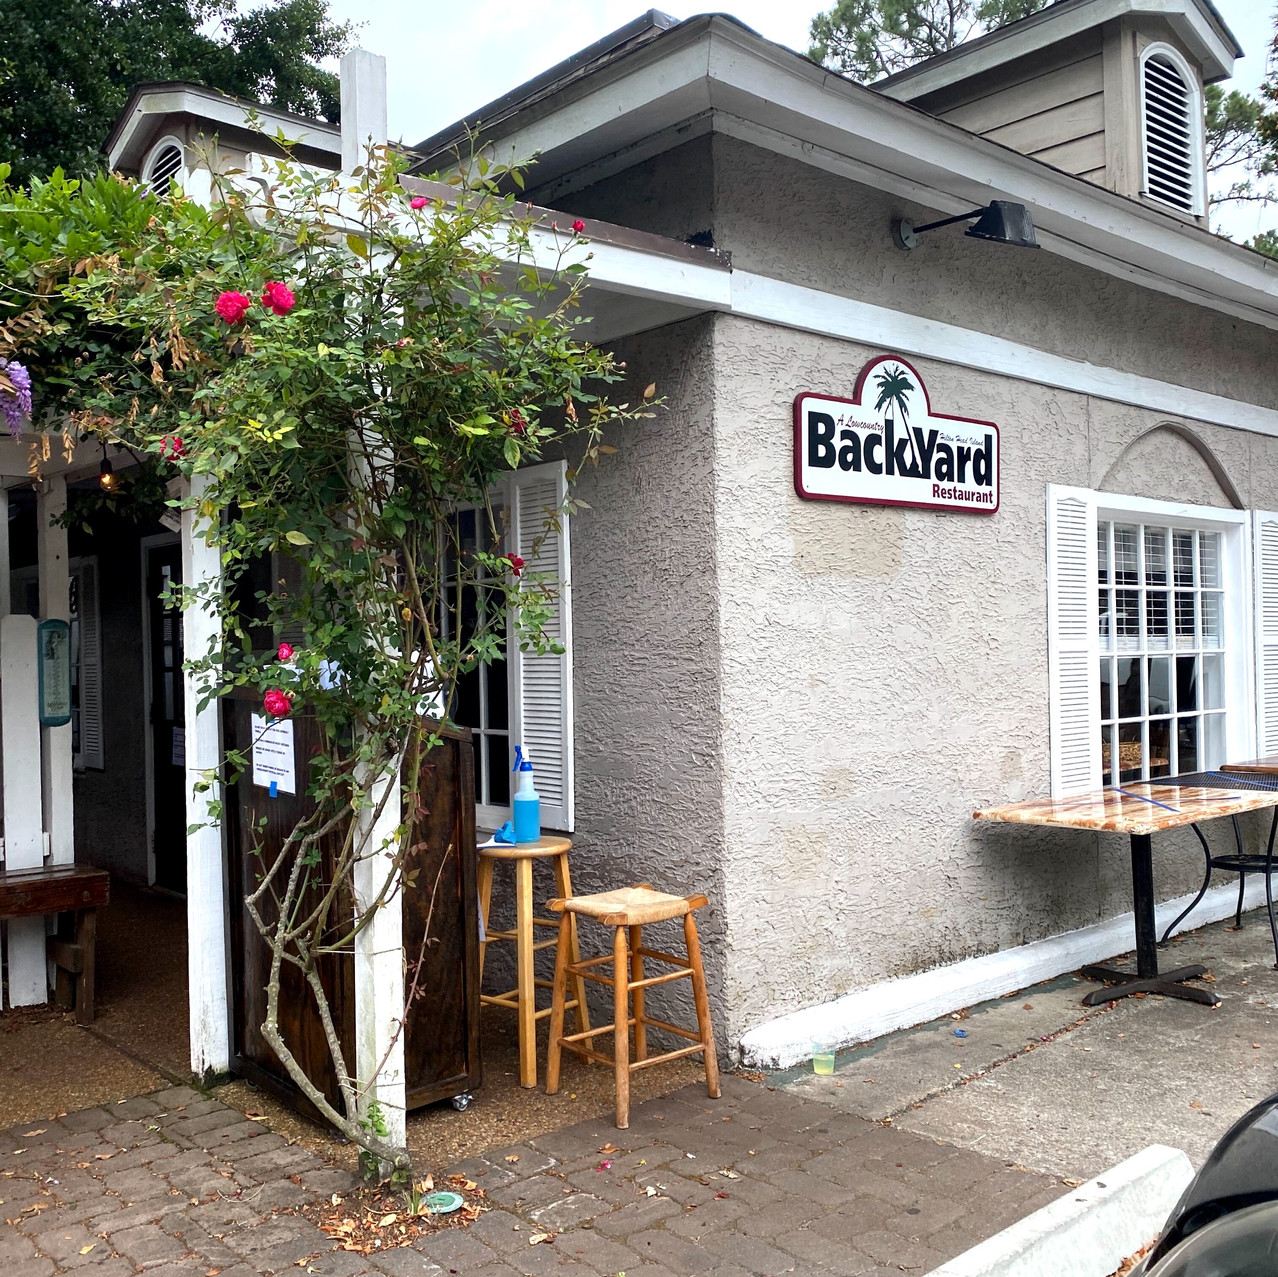 backyard restaurant at hilton head places to eat